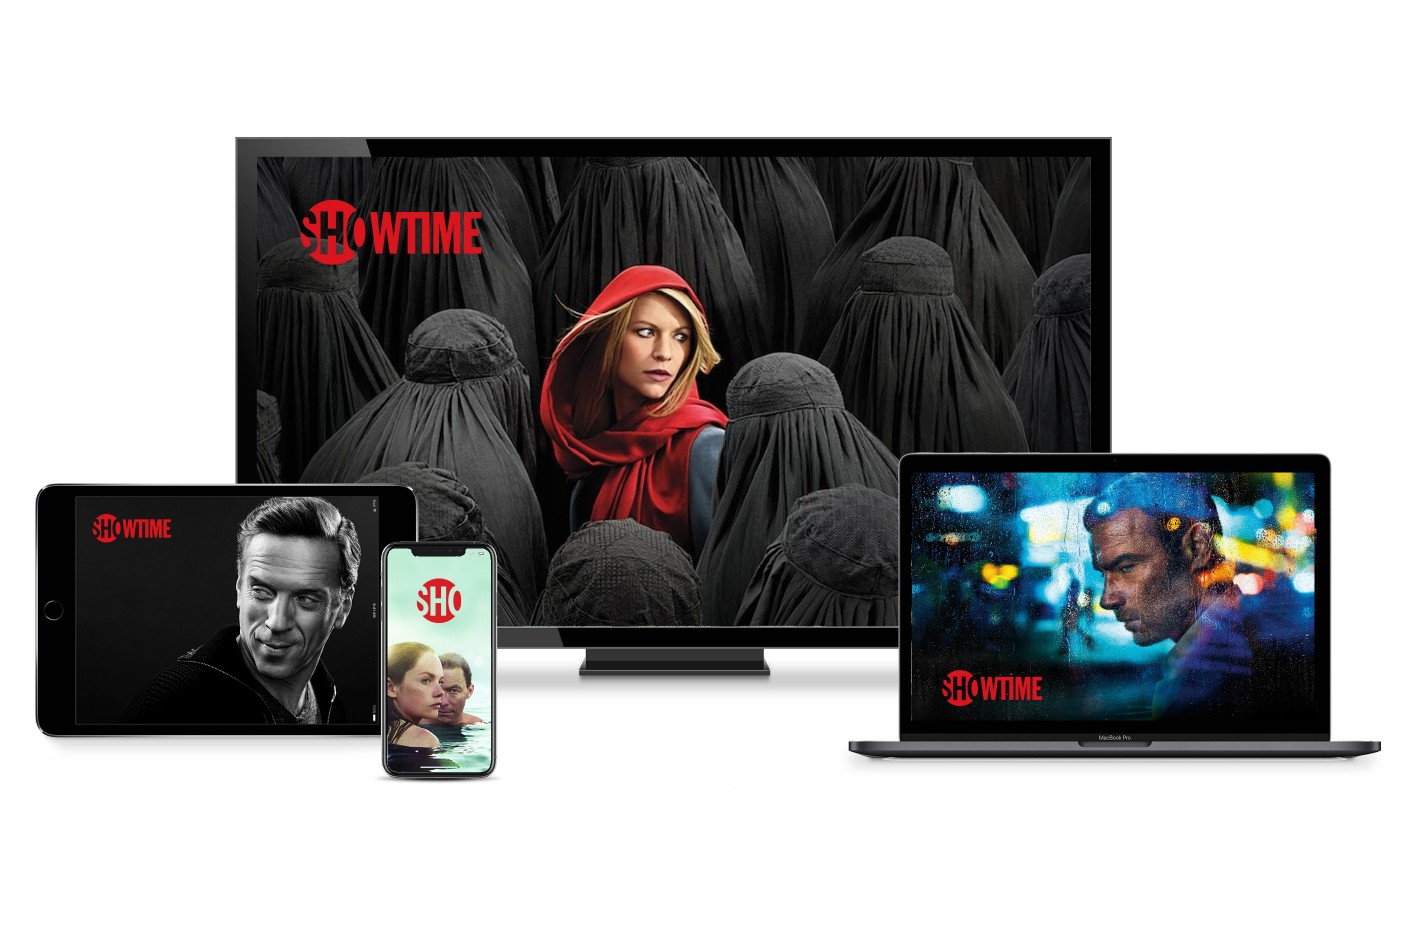 Showtime-w-Devices-1-2820x1880-2-1410x940